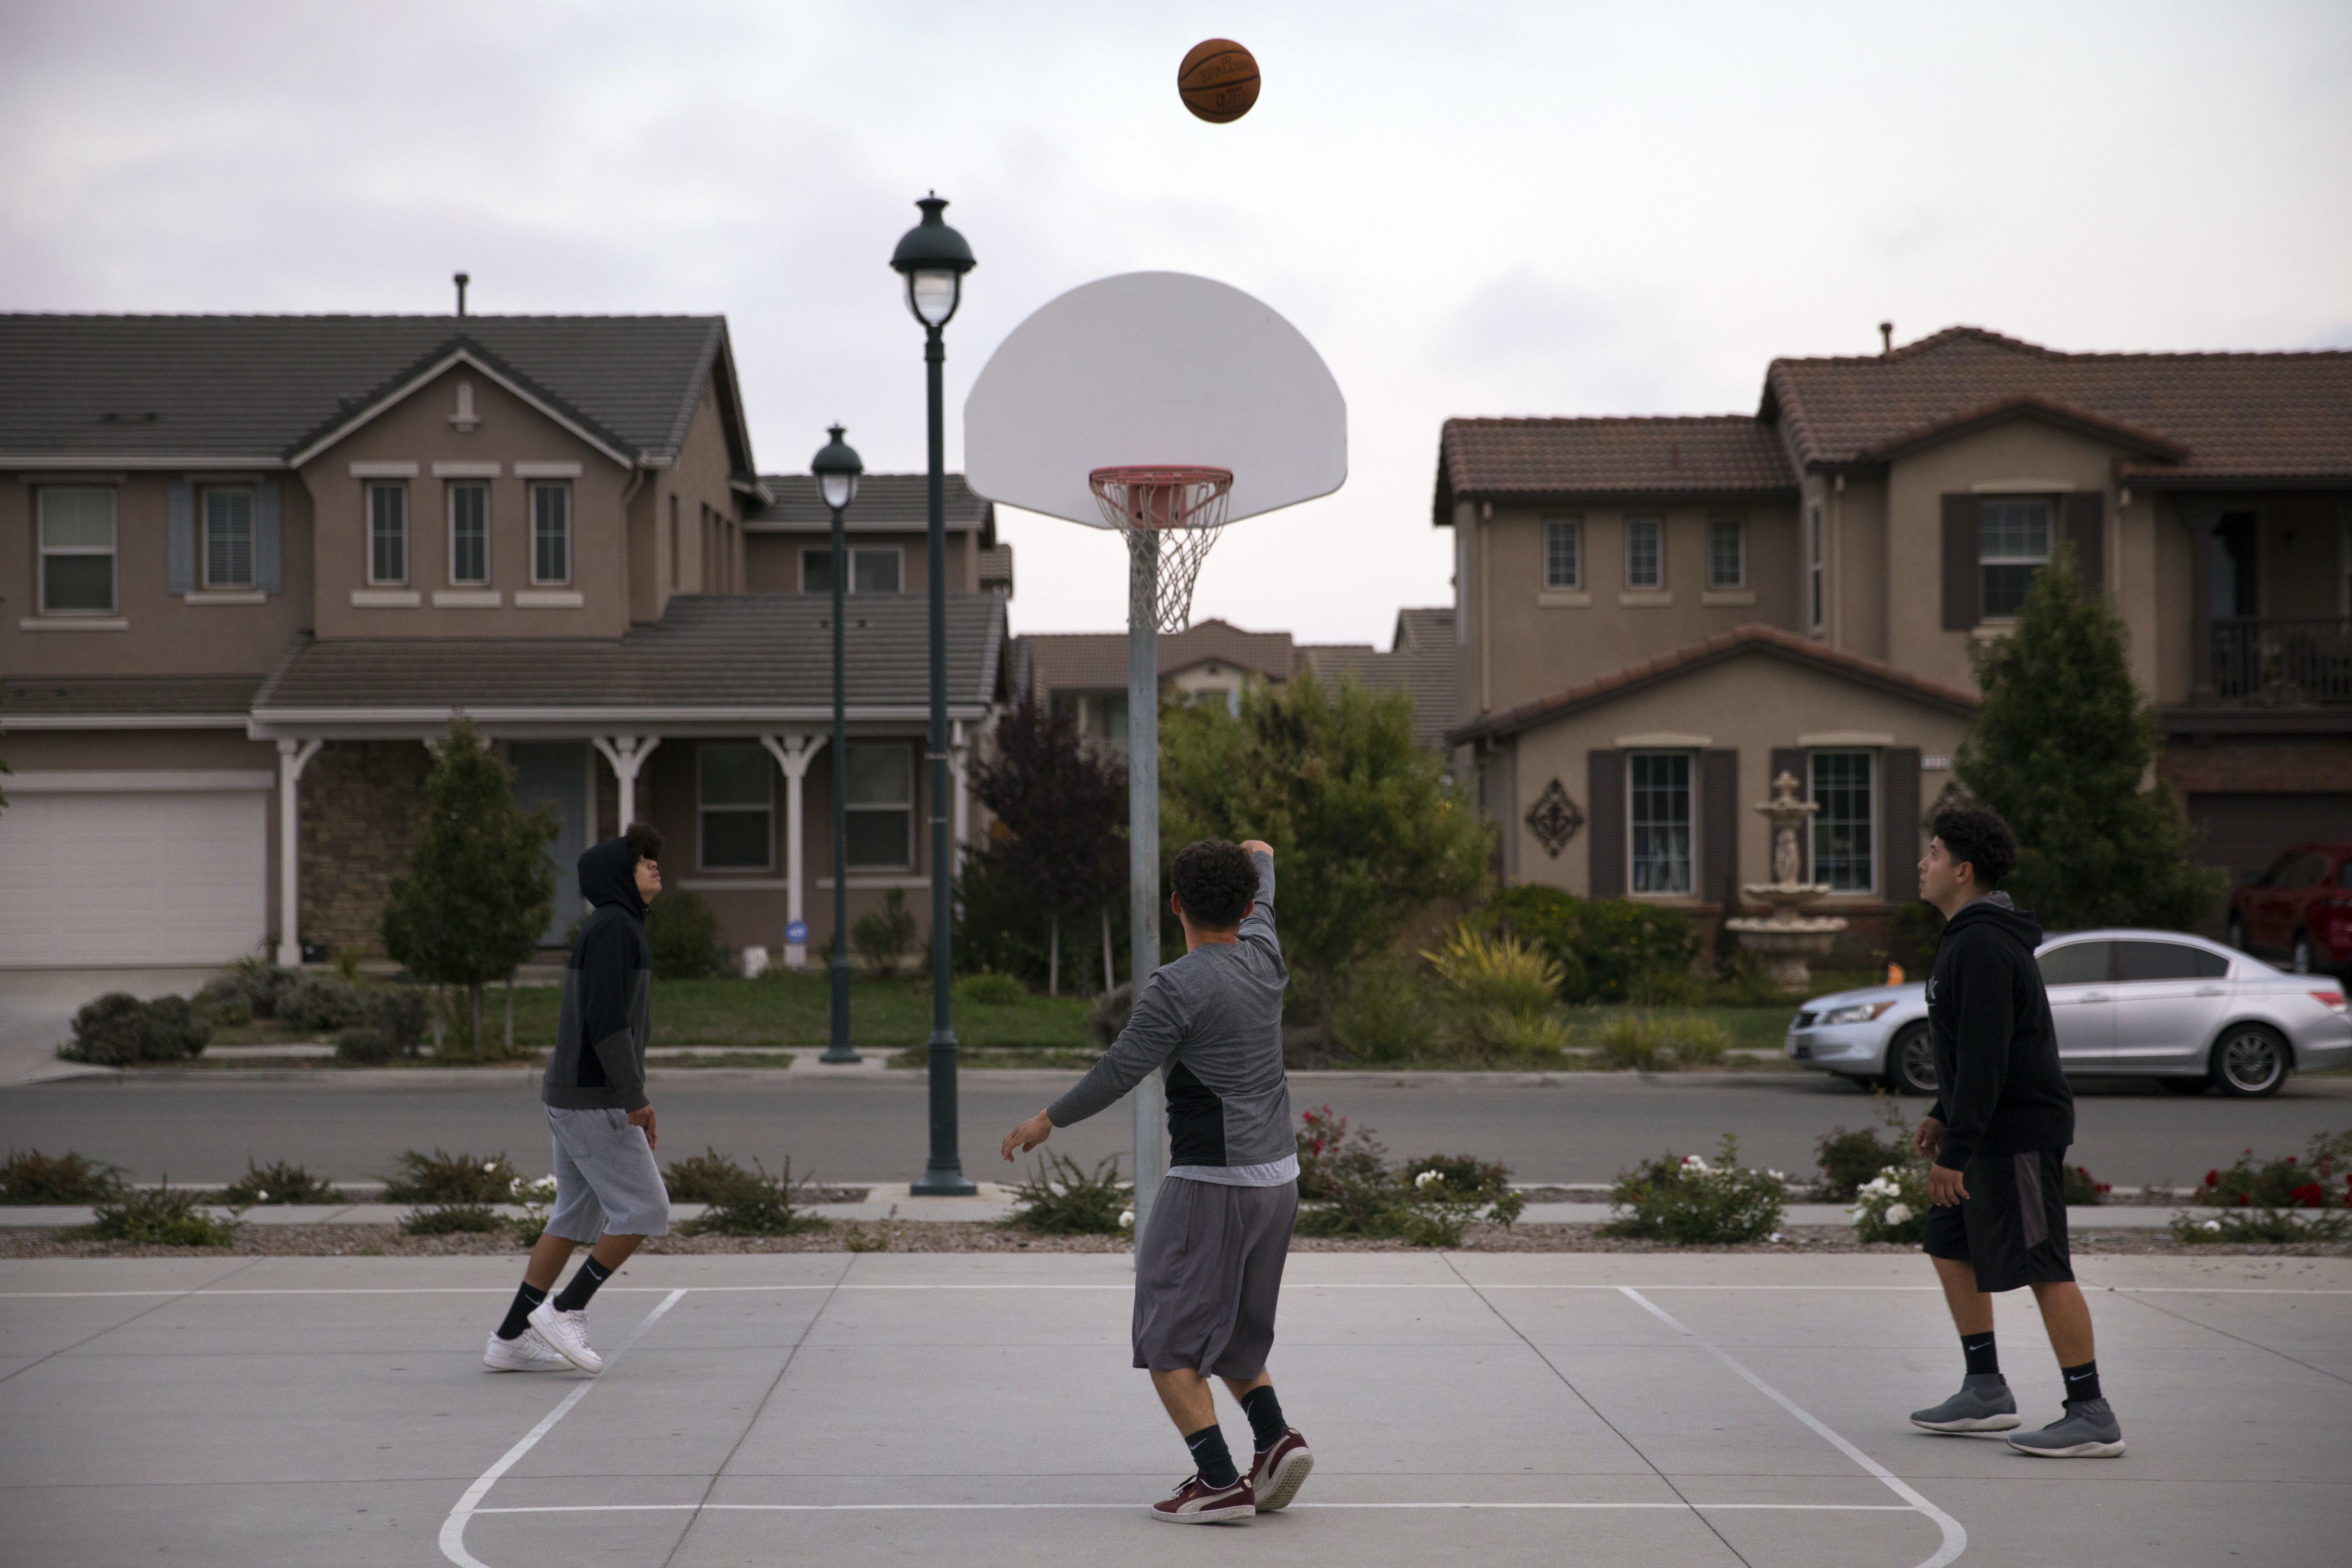 In this Monday, Sept. 3, 2018, photo, three men play basketball at a park in front of newly built homes in Salinas, Calif. Salinas is an affordable location compared to Silicon Valley, where median home prices are about $1 million, but with a less-wealthy population and a median home price that has ballooned to about $550,000 it's one of the least affordable places in America. (AP Photo/Jae C. Hong)